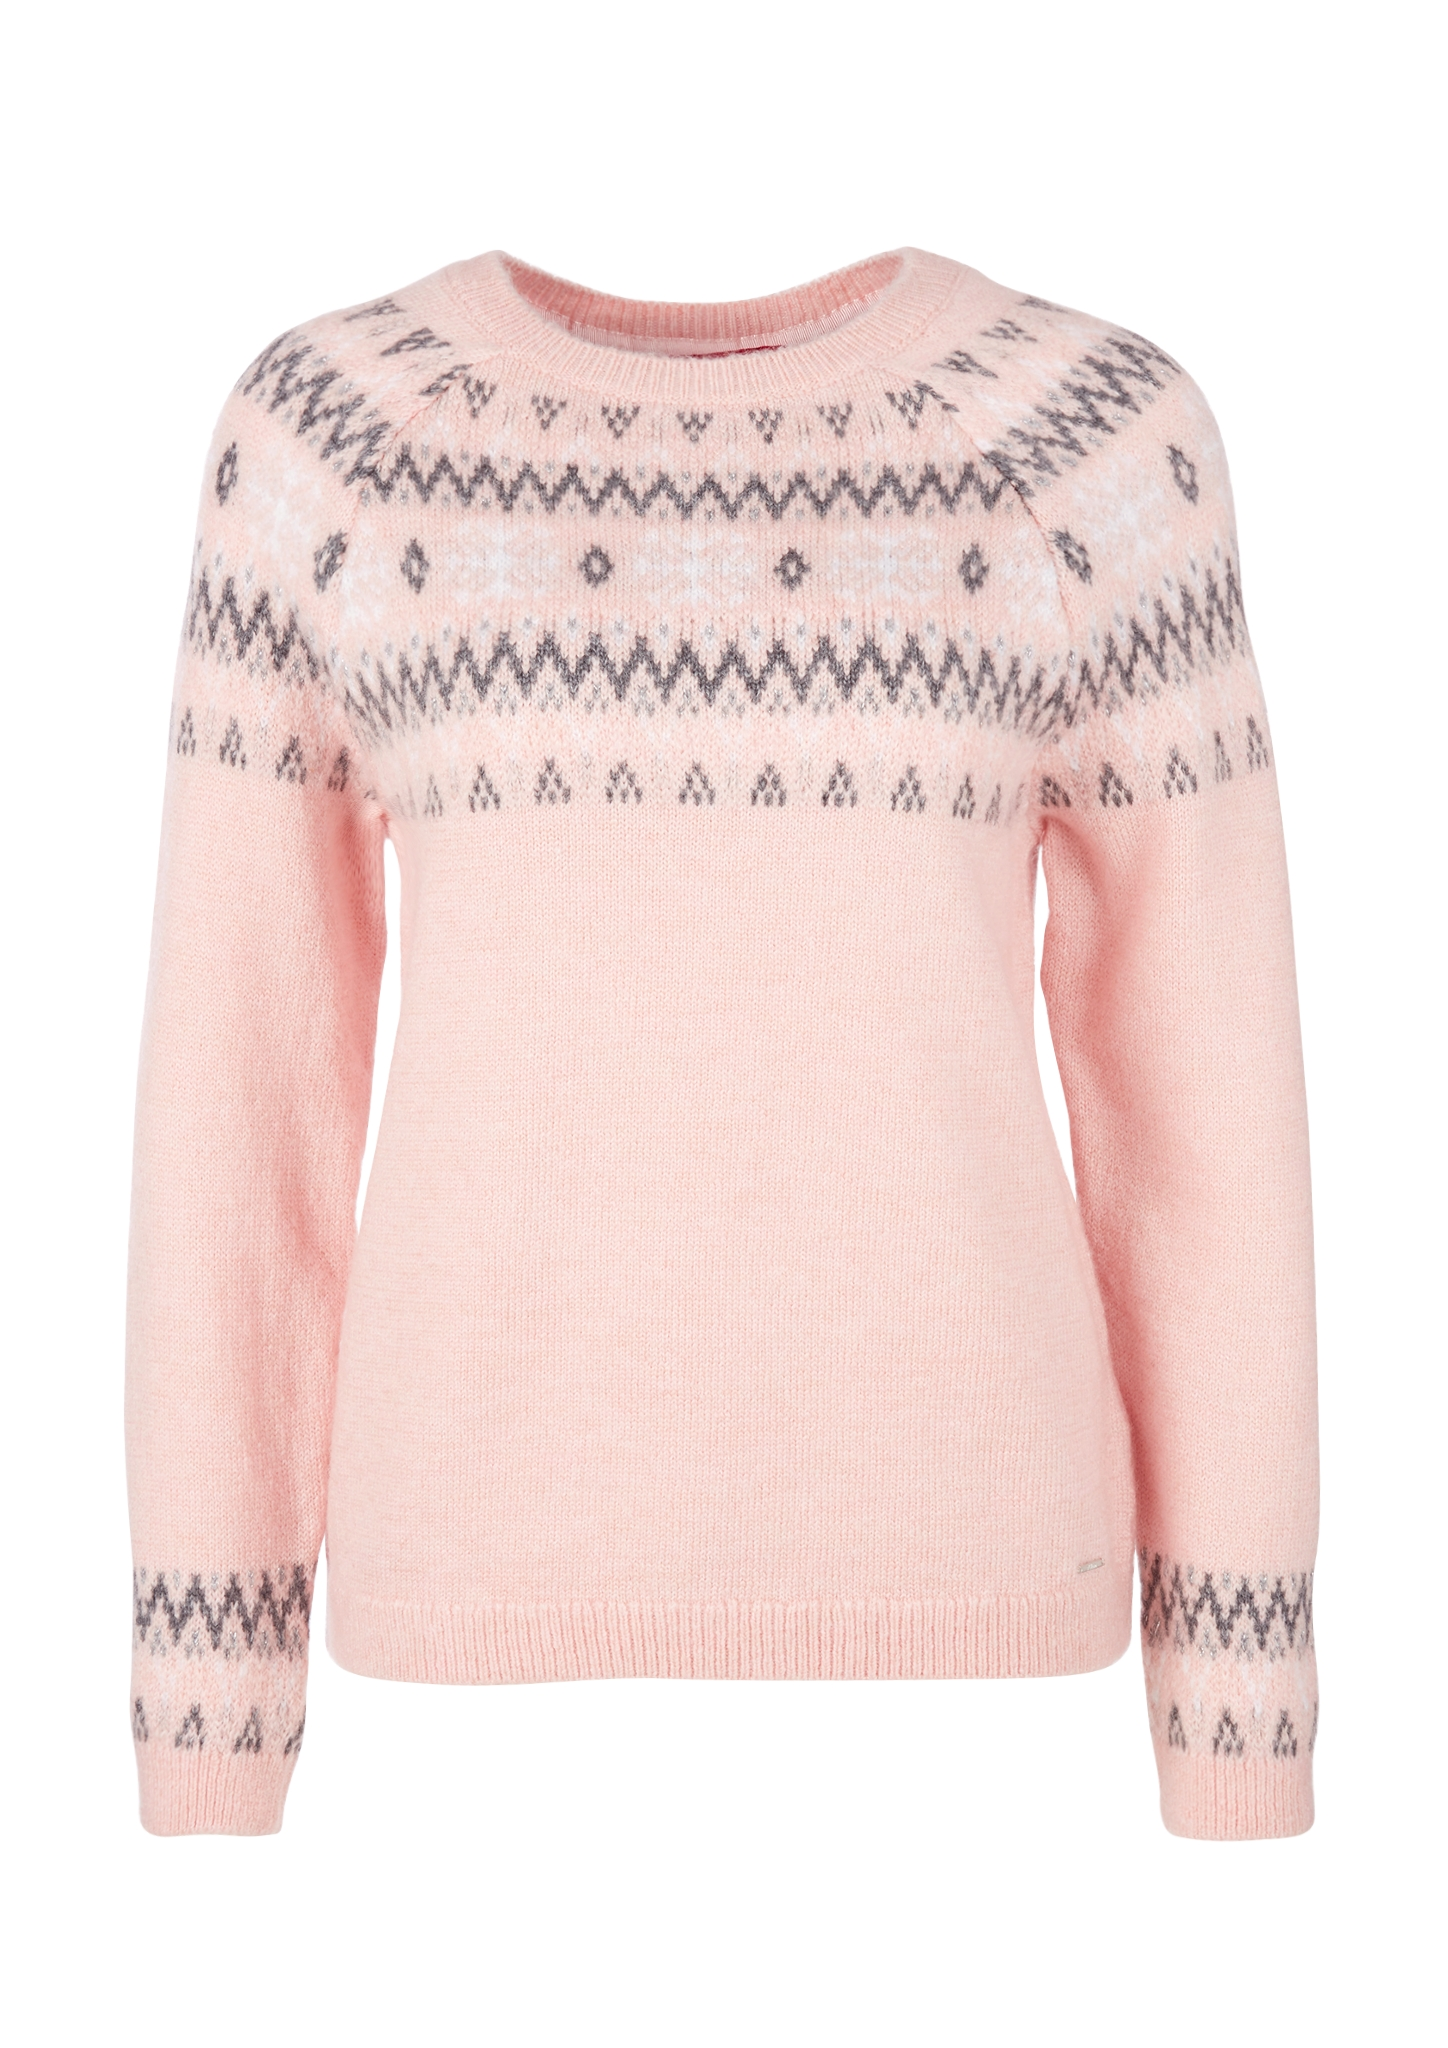 Norweger-Pullover | Bekleidung > Pullover > Norwegerpullover | Pink | 66% polyacryl -  27% polyester -  7% wolle | s.Oliver